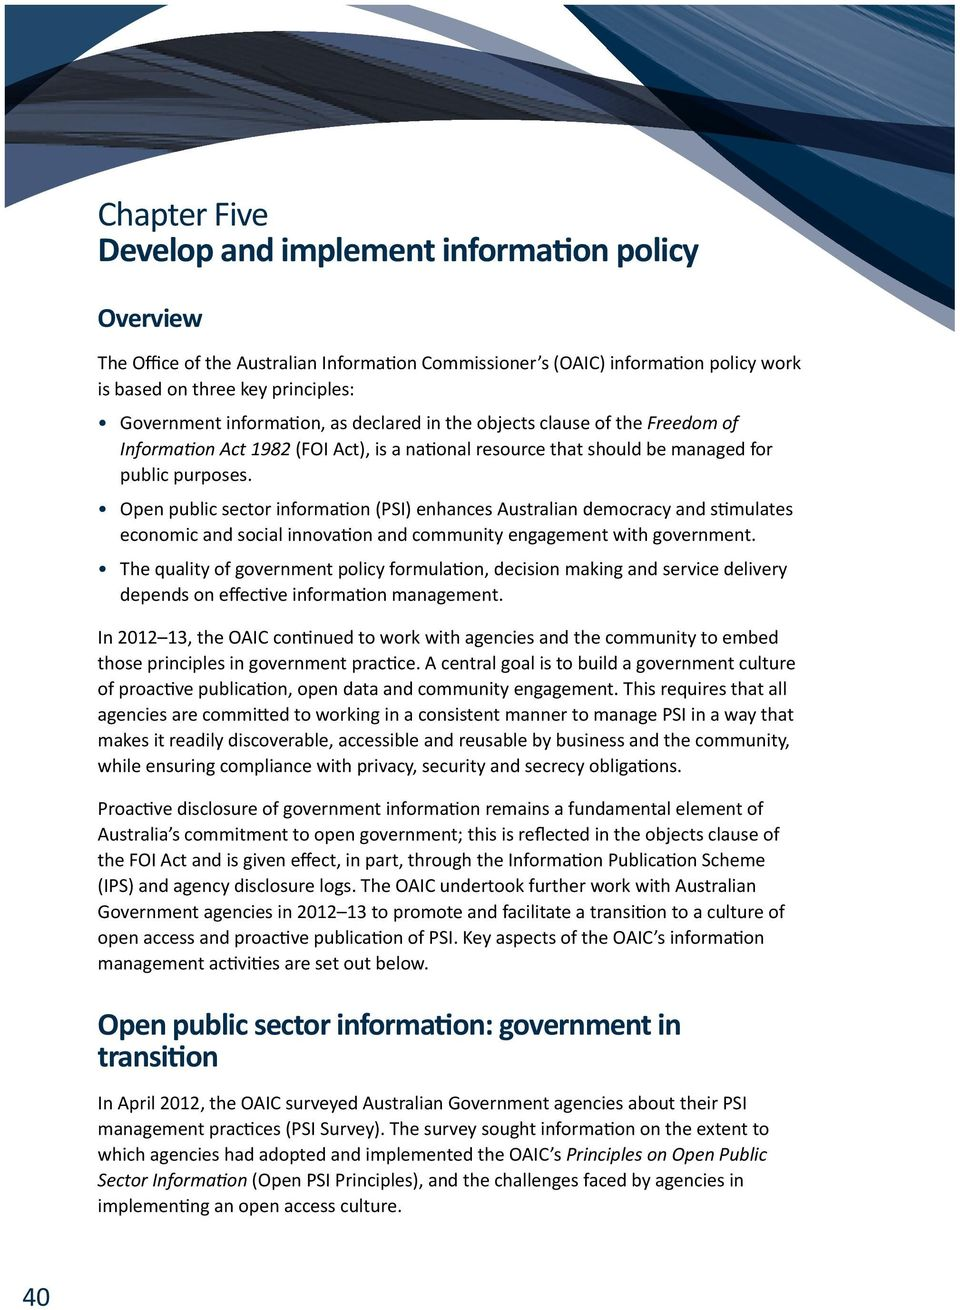 Open public sector information (PSI) enhances Australian democracy and stimulates economic and social innovation and community engagement with government.